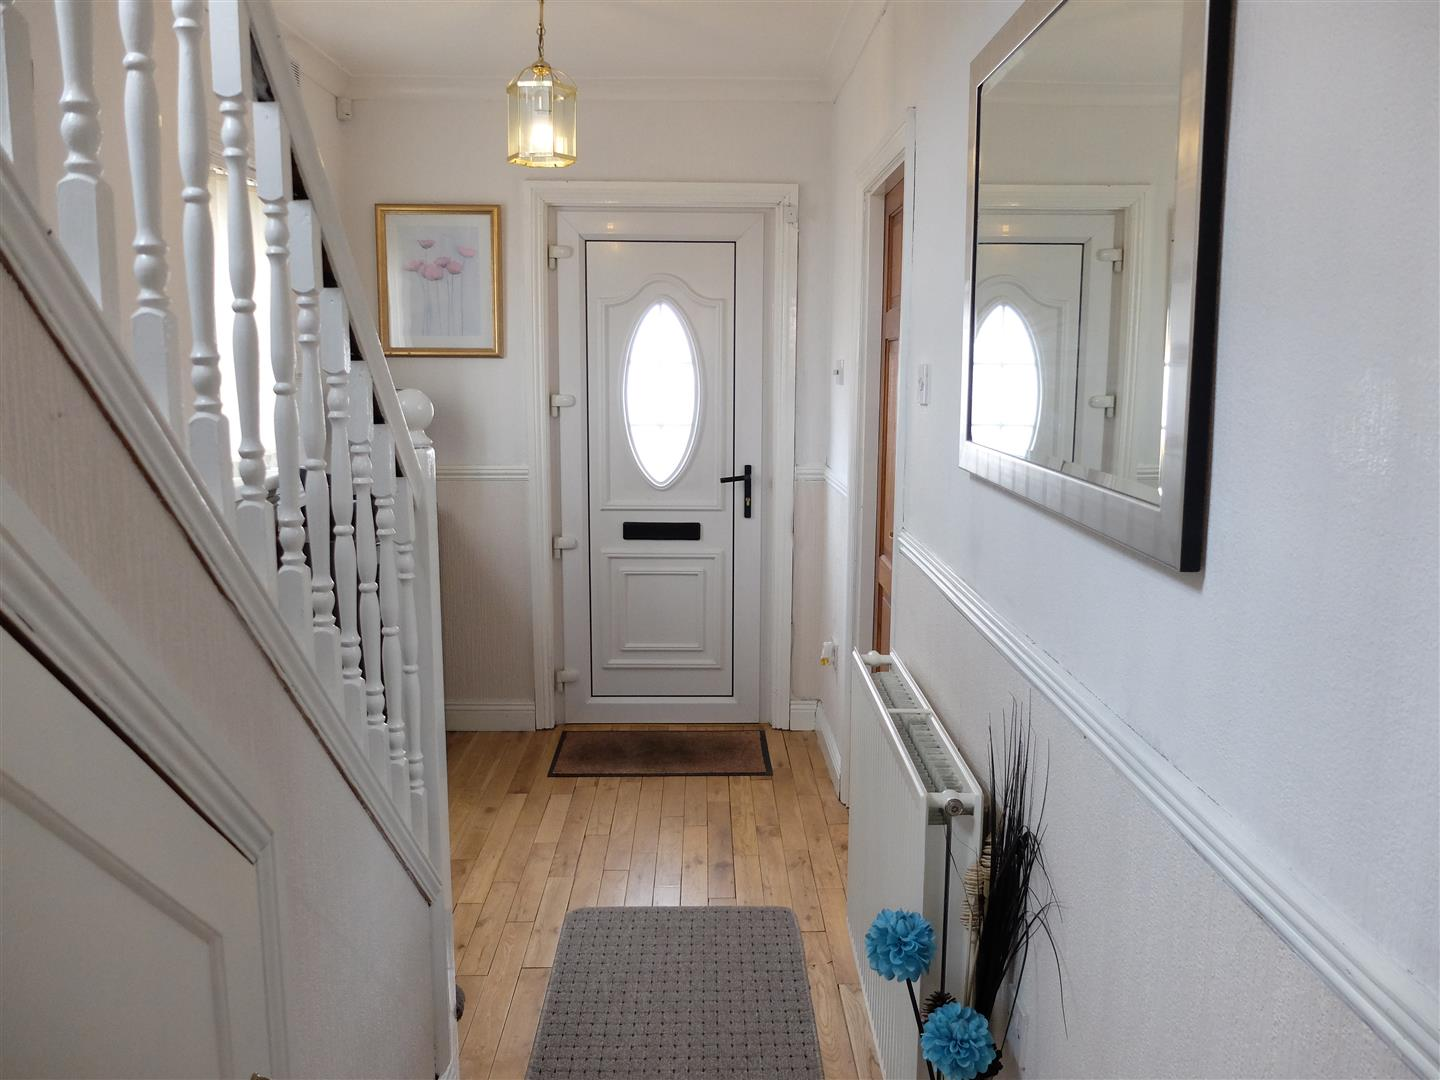 3 Bedrooms House - Semi-Detached For Sale 10 Ullswater Road Carlisle